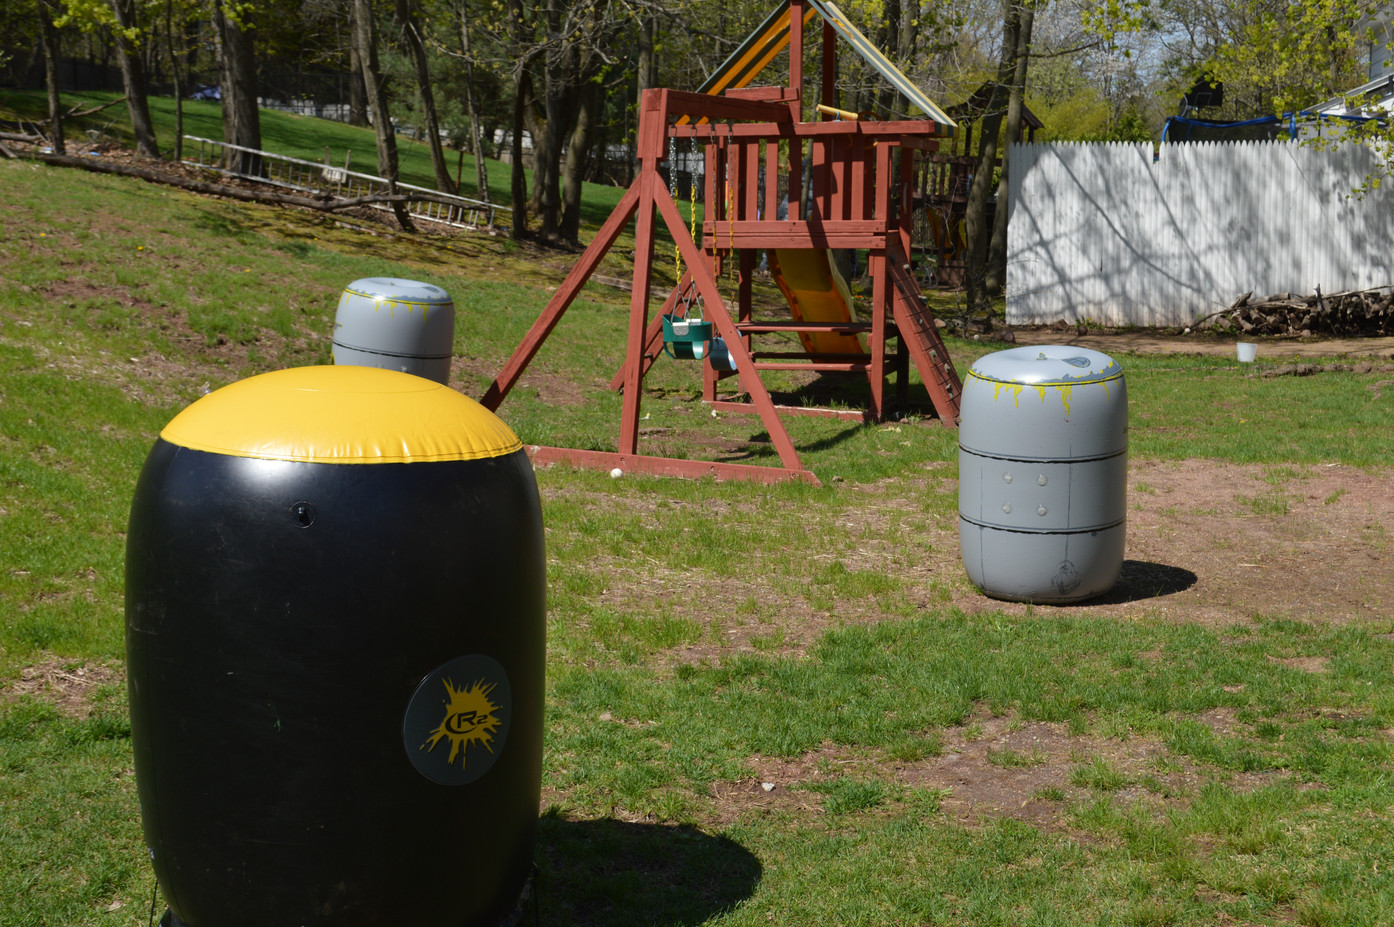 Three-Inflatable-Obstacles-At-The-Ground.JPG